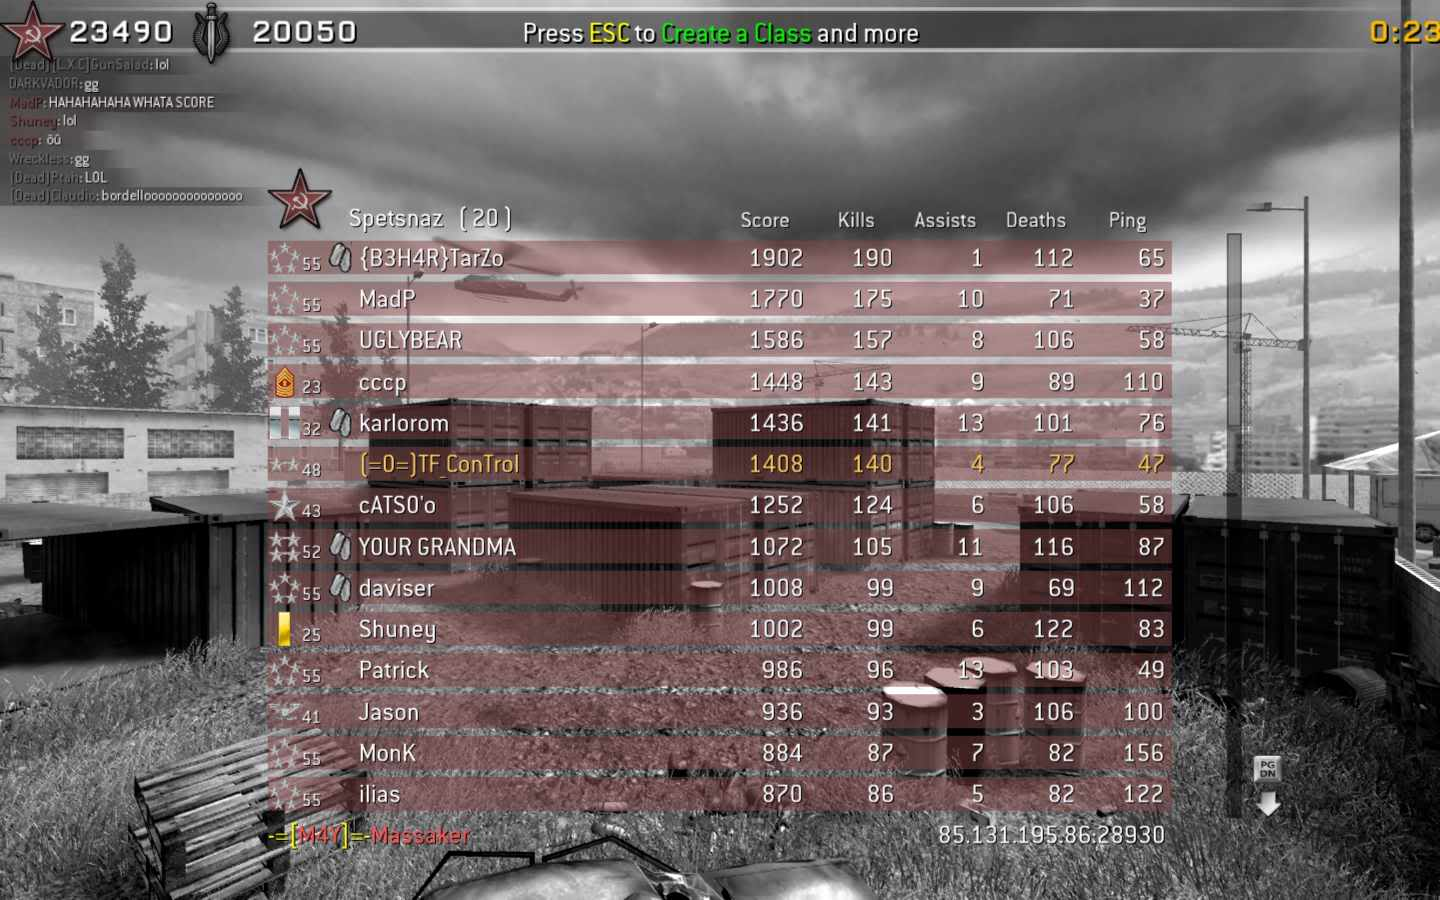 ScreenShots from Game, pwning, 0wning, or just funny Iw3mp2008-02-2215-12-18-93